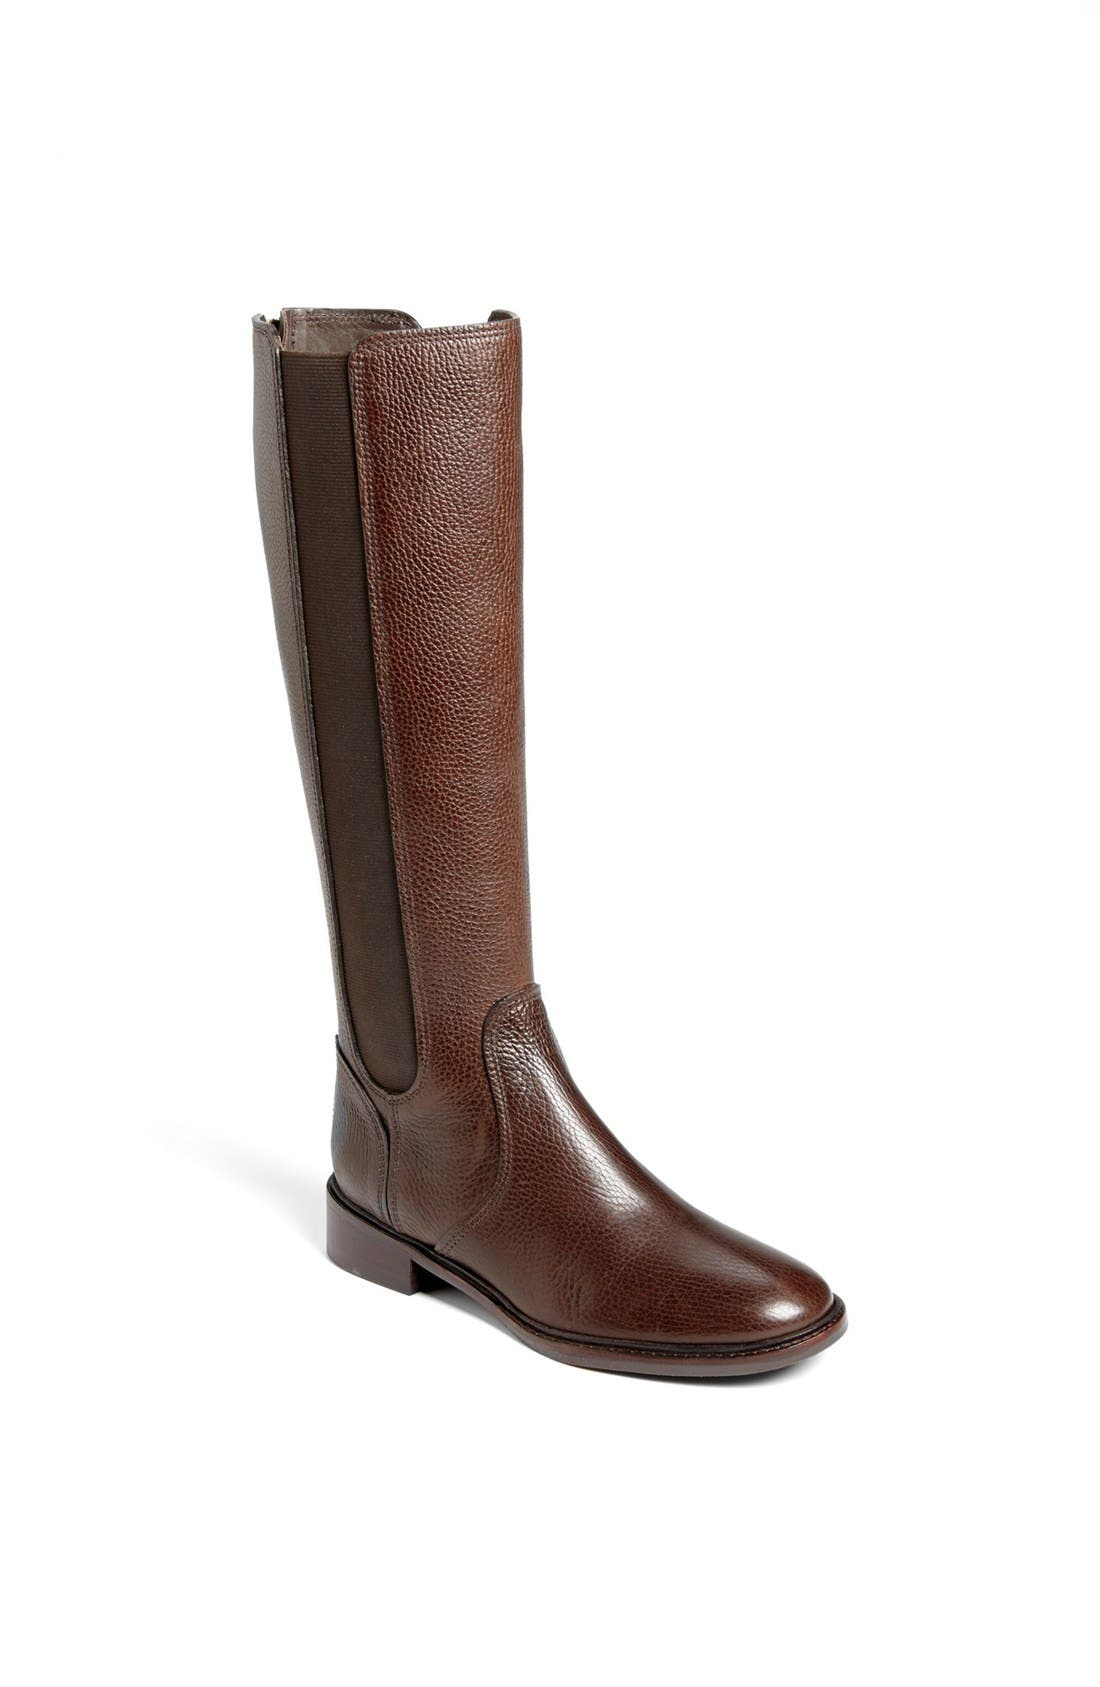 Alternate Image 1 Selected - Tory Burch 'Christy' Leather Riding Boot